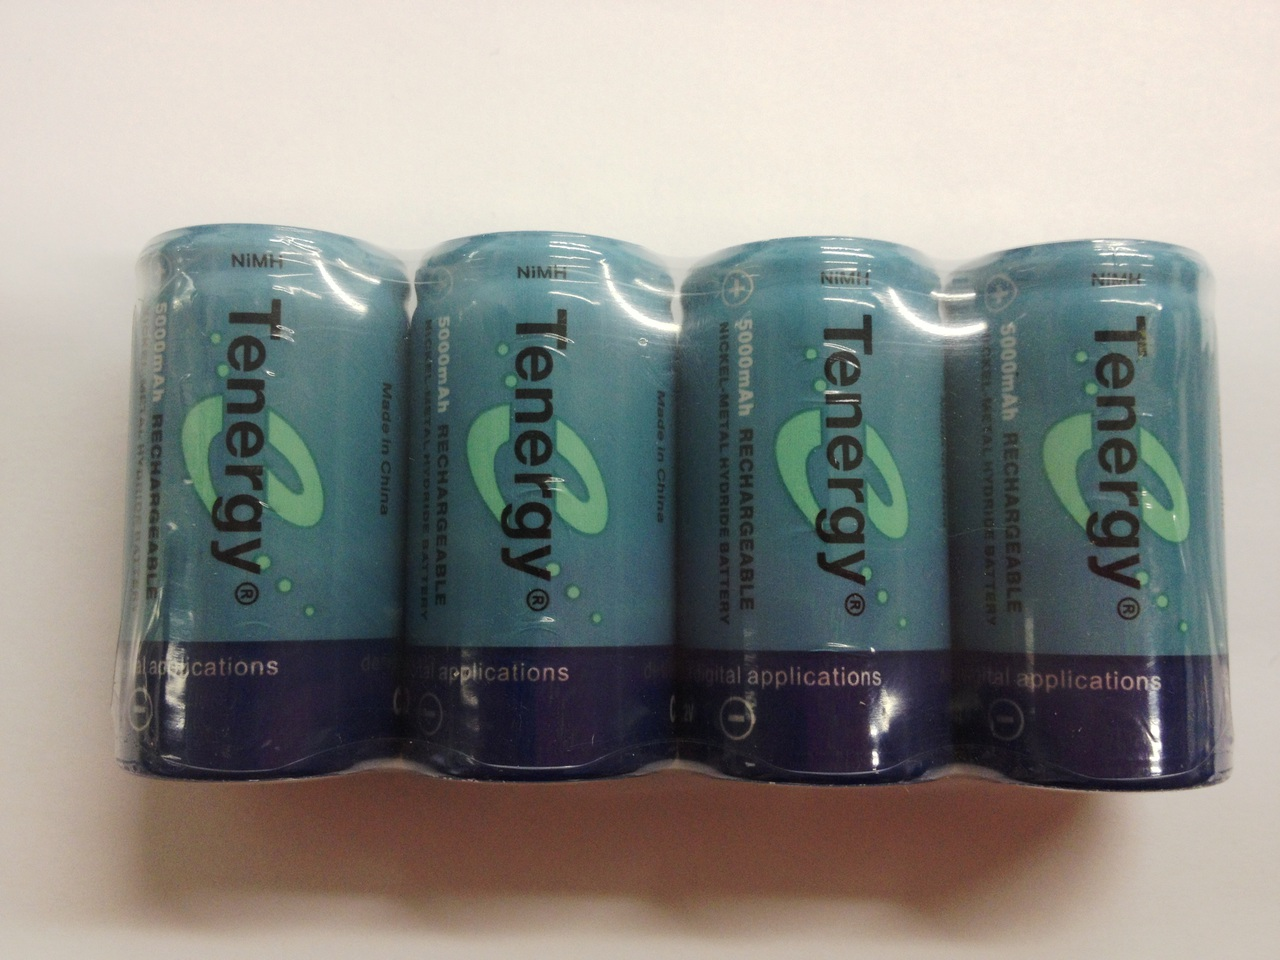 Tenergy 4 Pcs C Size 5000mAh High Capacity High Rate NiMH Rechargeable Batteries + FREE SHIPPING!